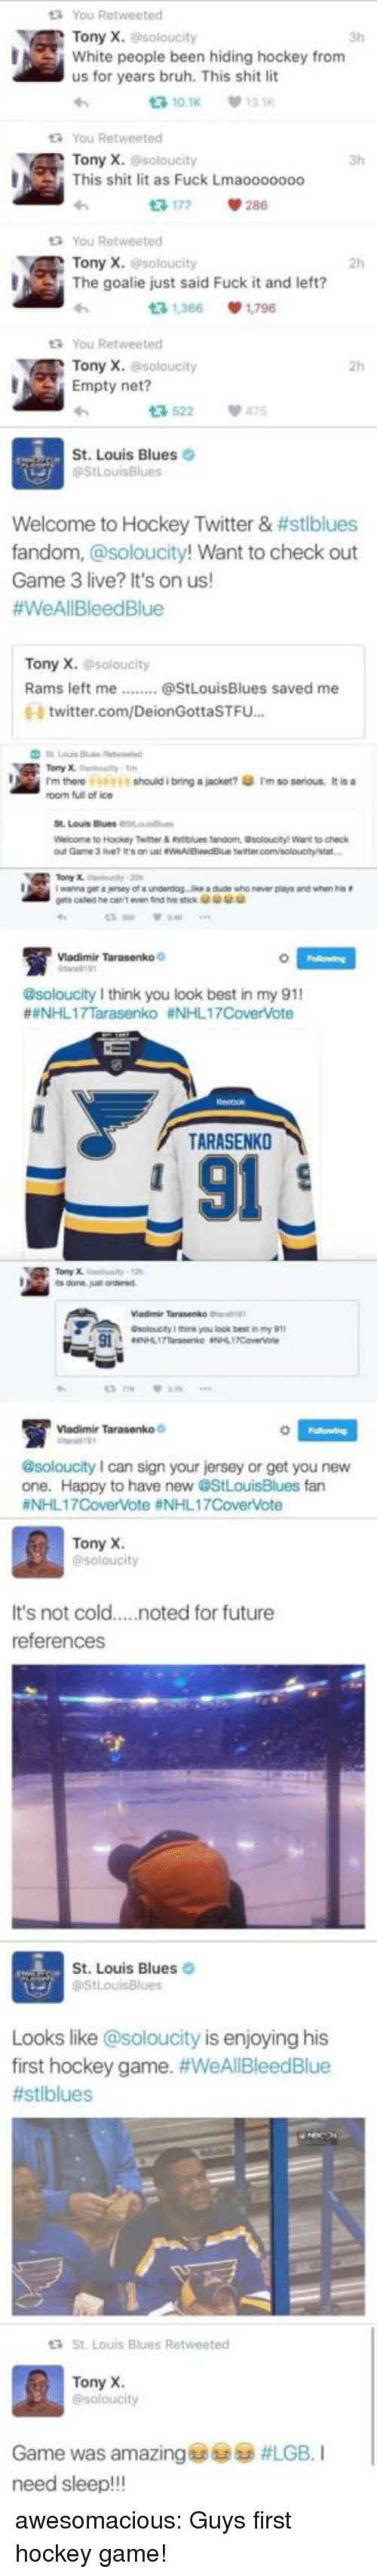 Bruh, Future, and Hockey: You Retweeted  Tony X. @soloucity  3h  White people been hiding hockey from  us for years bruh. This shit lit  다10.1K  13K  You Retweeted  Tony X. @soloucity  This shit lit as Fuck Lmaooooooo  3h  다 177  286  You Retweeted  Tony X. esoloucity  2h  The goalie just said Fuck it and left?  3 1,366 1,796  You Retweeted  Tony X.soloucity  다522  St. Louis Blues O  2h  Empty net?  475  Welcome to Hockey Twitter & #stblues  fandom, @soloucity! Want to check out  Game 3 live? It's on us!  #WeAll Bleed Blue  on  us!  Tony X. soloucity  昏 twitter.com/DeionGottaSTFu..  rm there 977 should i bring alacket?傘rm so serous. Itisa  room fuil ofice  Weco  าย to Hockey Twitter & nttues tanom, osotootyl wart to check  Vladimir Tarasenko  @soloucity I think you look best in my 91  #eNHL17Tarasenko #NHL17Covente  TARASENKO  L 91  soloucity you look best nmy  iadimir Tarasenko  @soloucity I can sign your jersey or get you new  one. Happy to have new @StLouisBlues fan  #NHLI 7CoverVote #NHL 1 7CoverVote  Tony X  It's not cold....noted for future  references  St. Louis Blues  Looks like @soloucity is enjoying his  first hockey game. #WeAllBleedBlue  #stiblues  St. Louis Blues Retweeted  Tony X  Game was amazing@sp6à #LGB. I  need sleep!!! awesomacious:  Guys first hockey game!